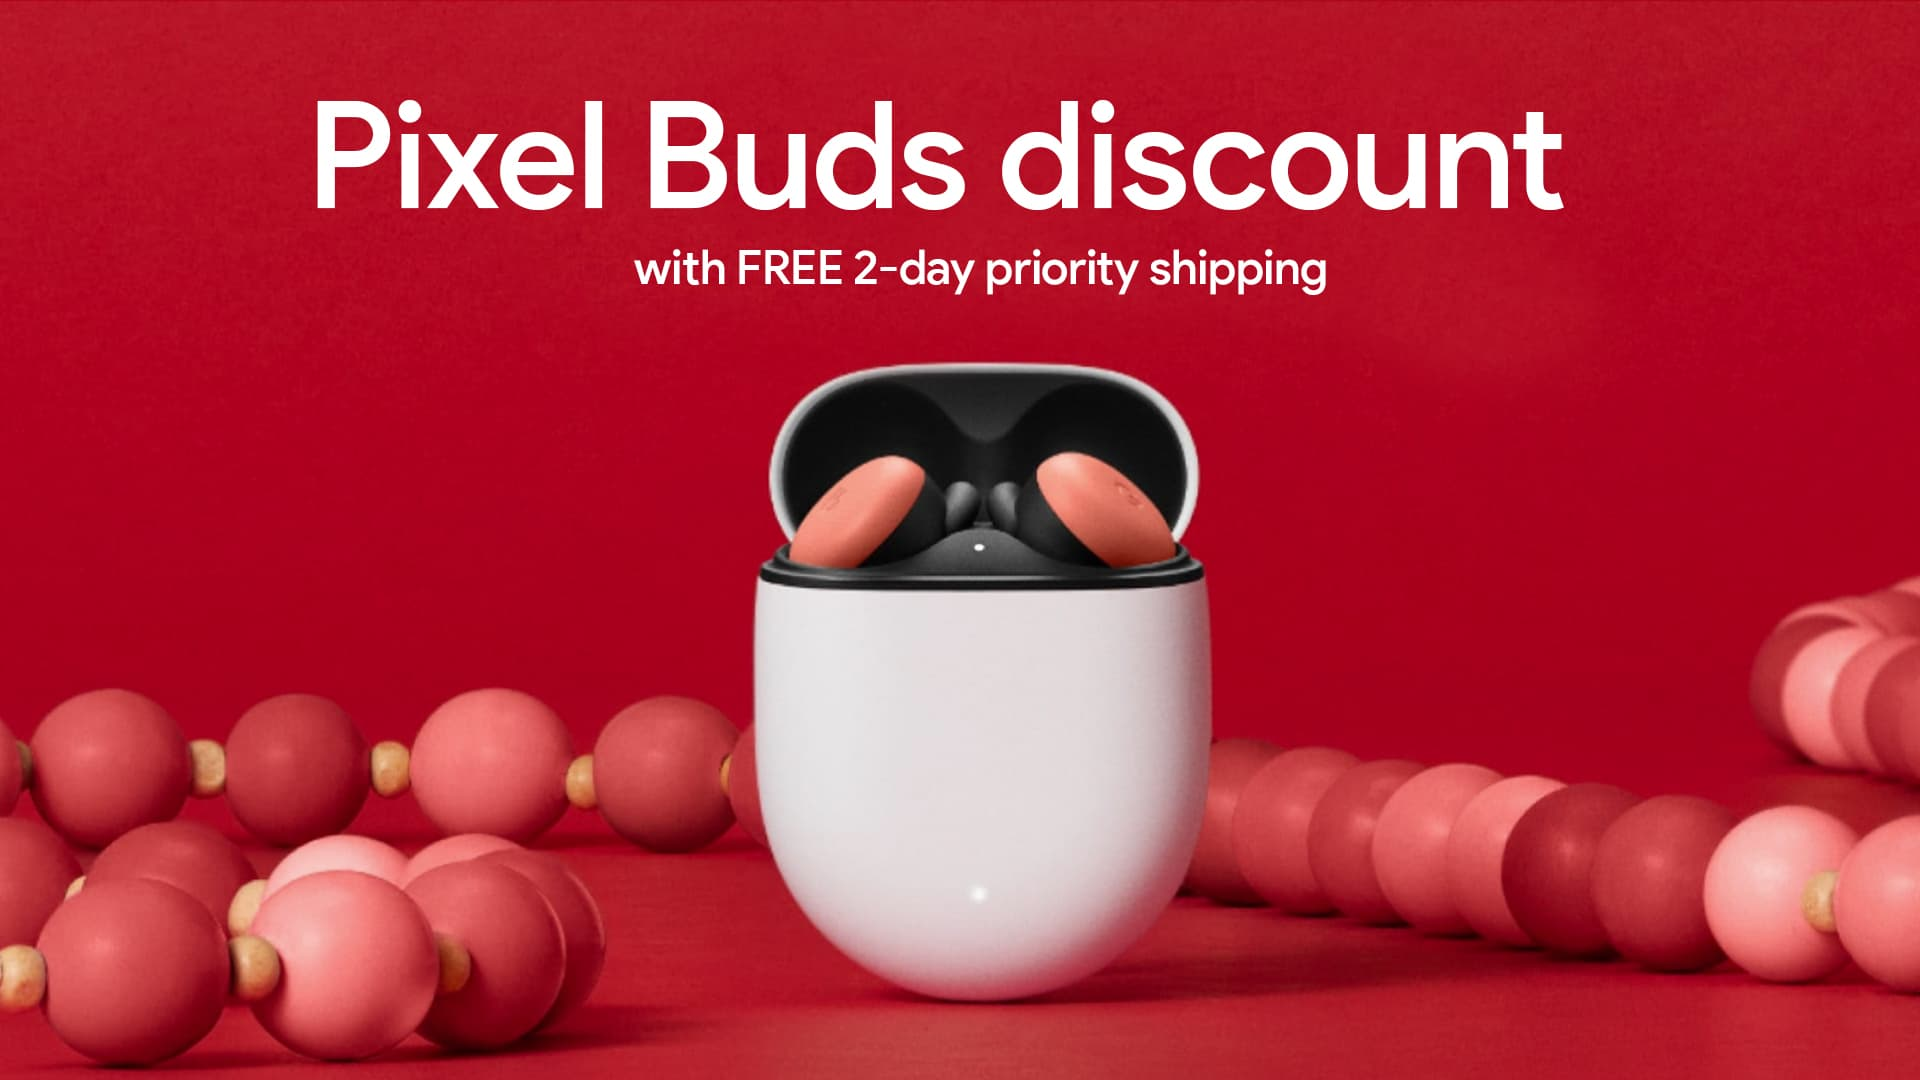 Google's Pixel Buds are on sale with free 2-day shipping just in time for Christmas